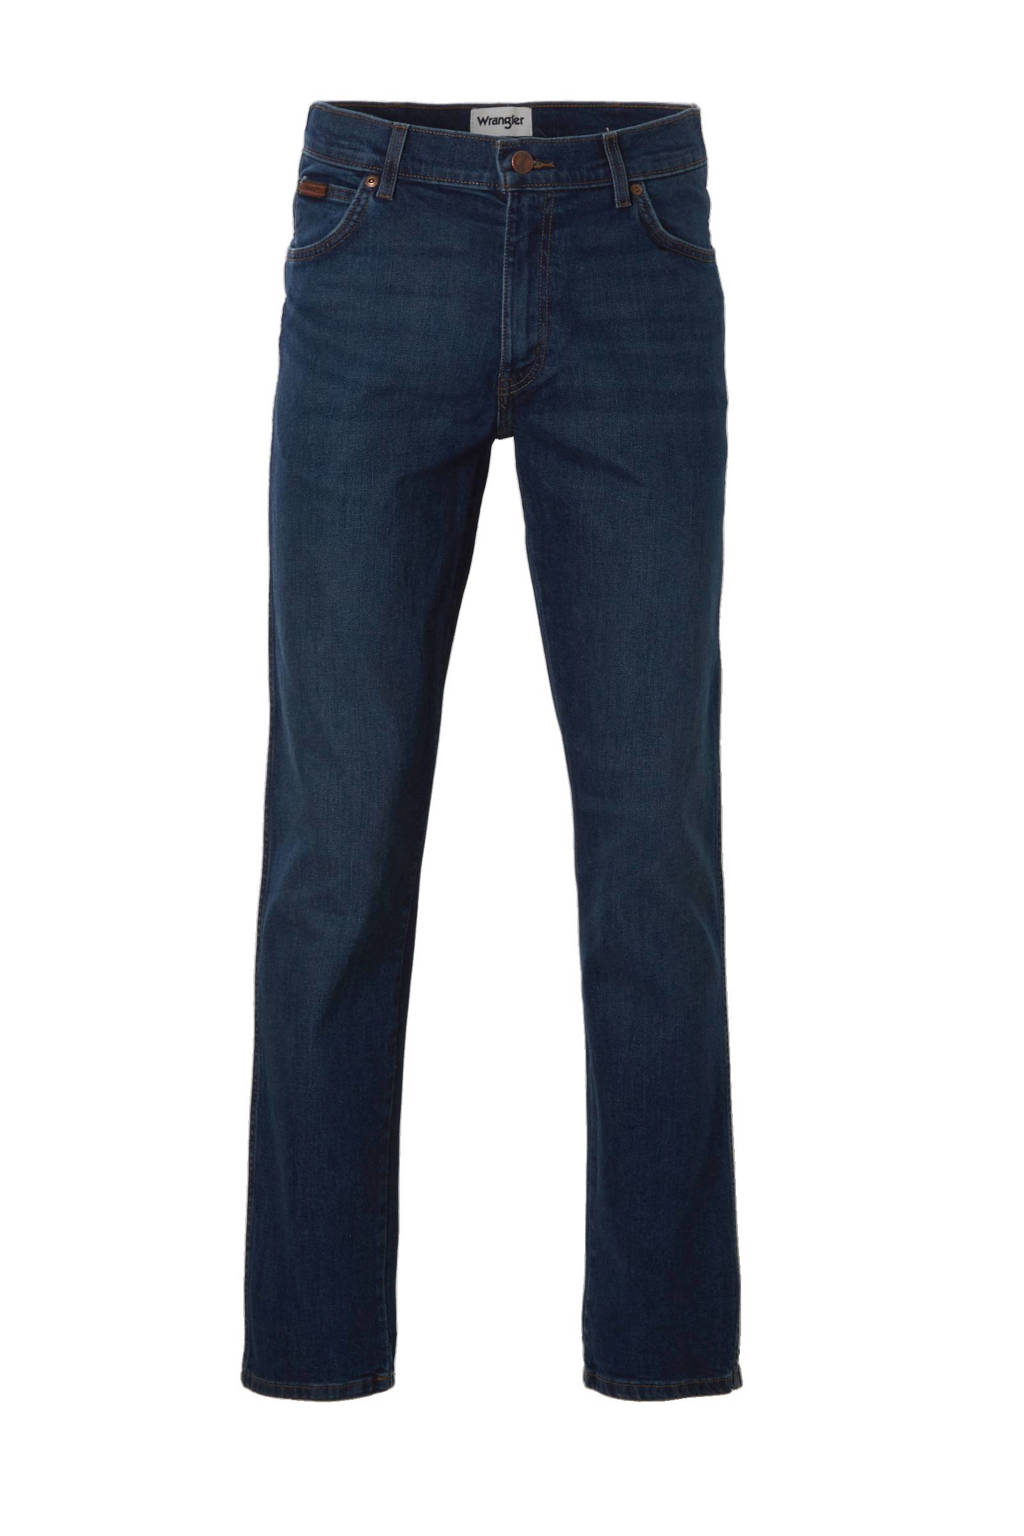 Wrangler  straight Texas regular fit jeans, Indigo wit